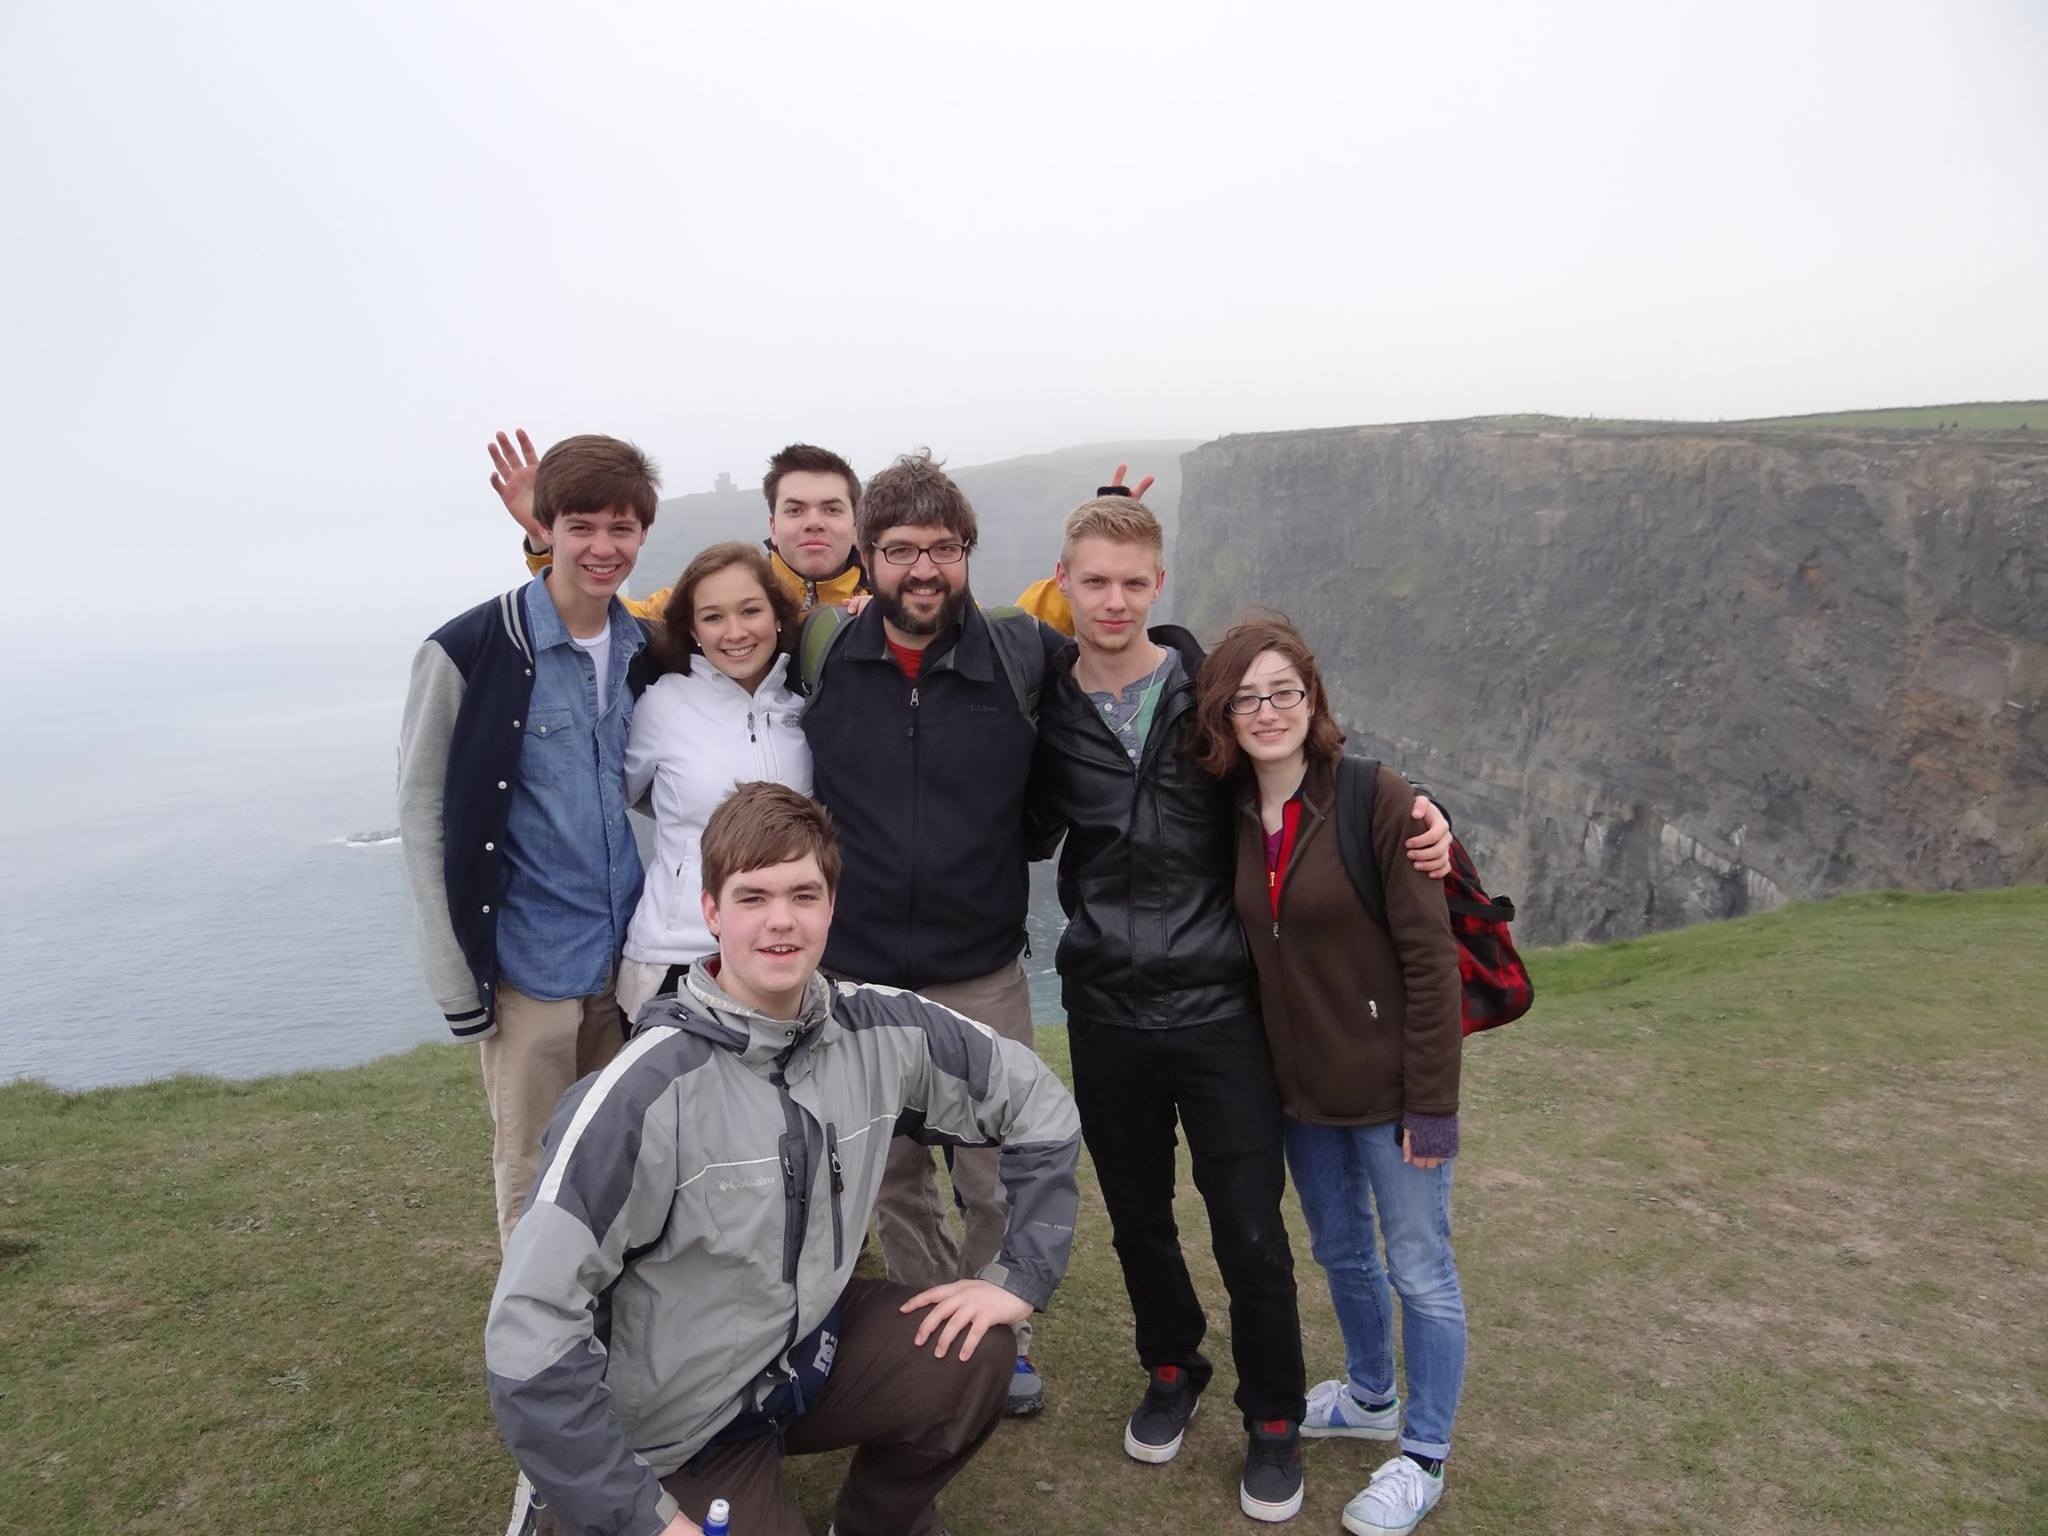 Nathan Cohen and his students posing for a group photo atop the Cliffs of Moher on a foggy day